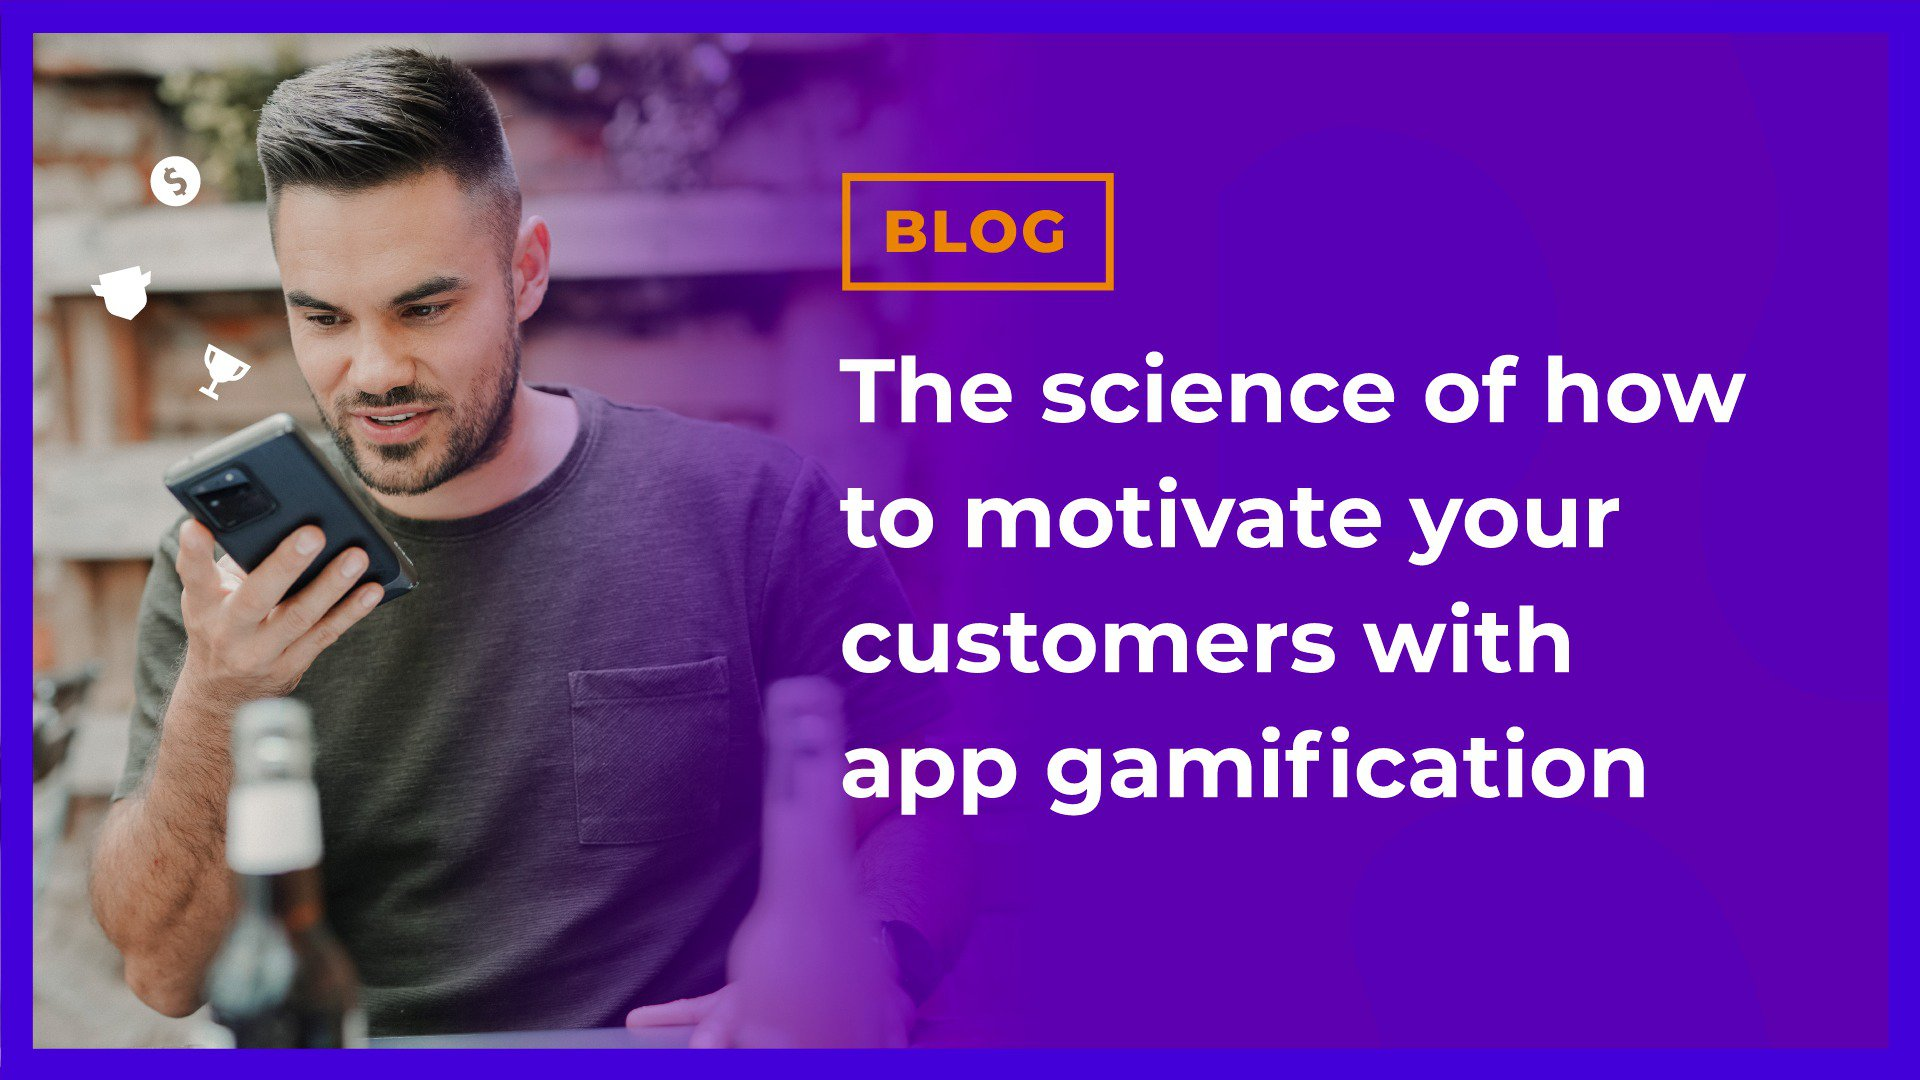 The science of how to motivate your customers with app gamification